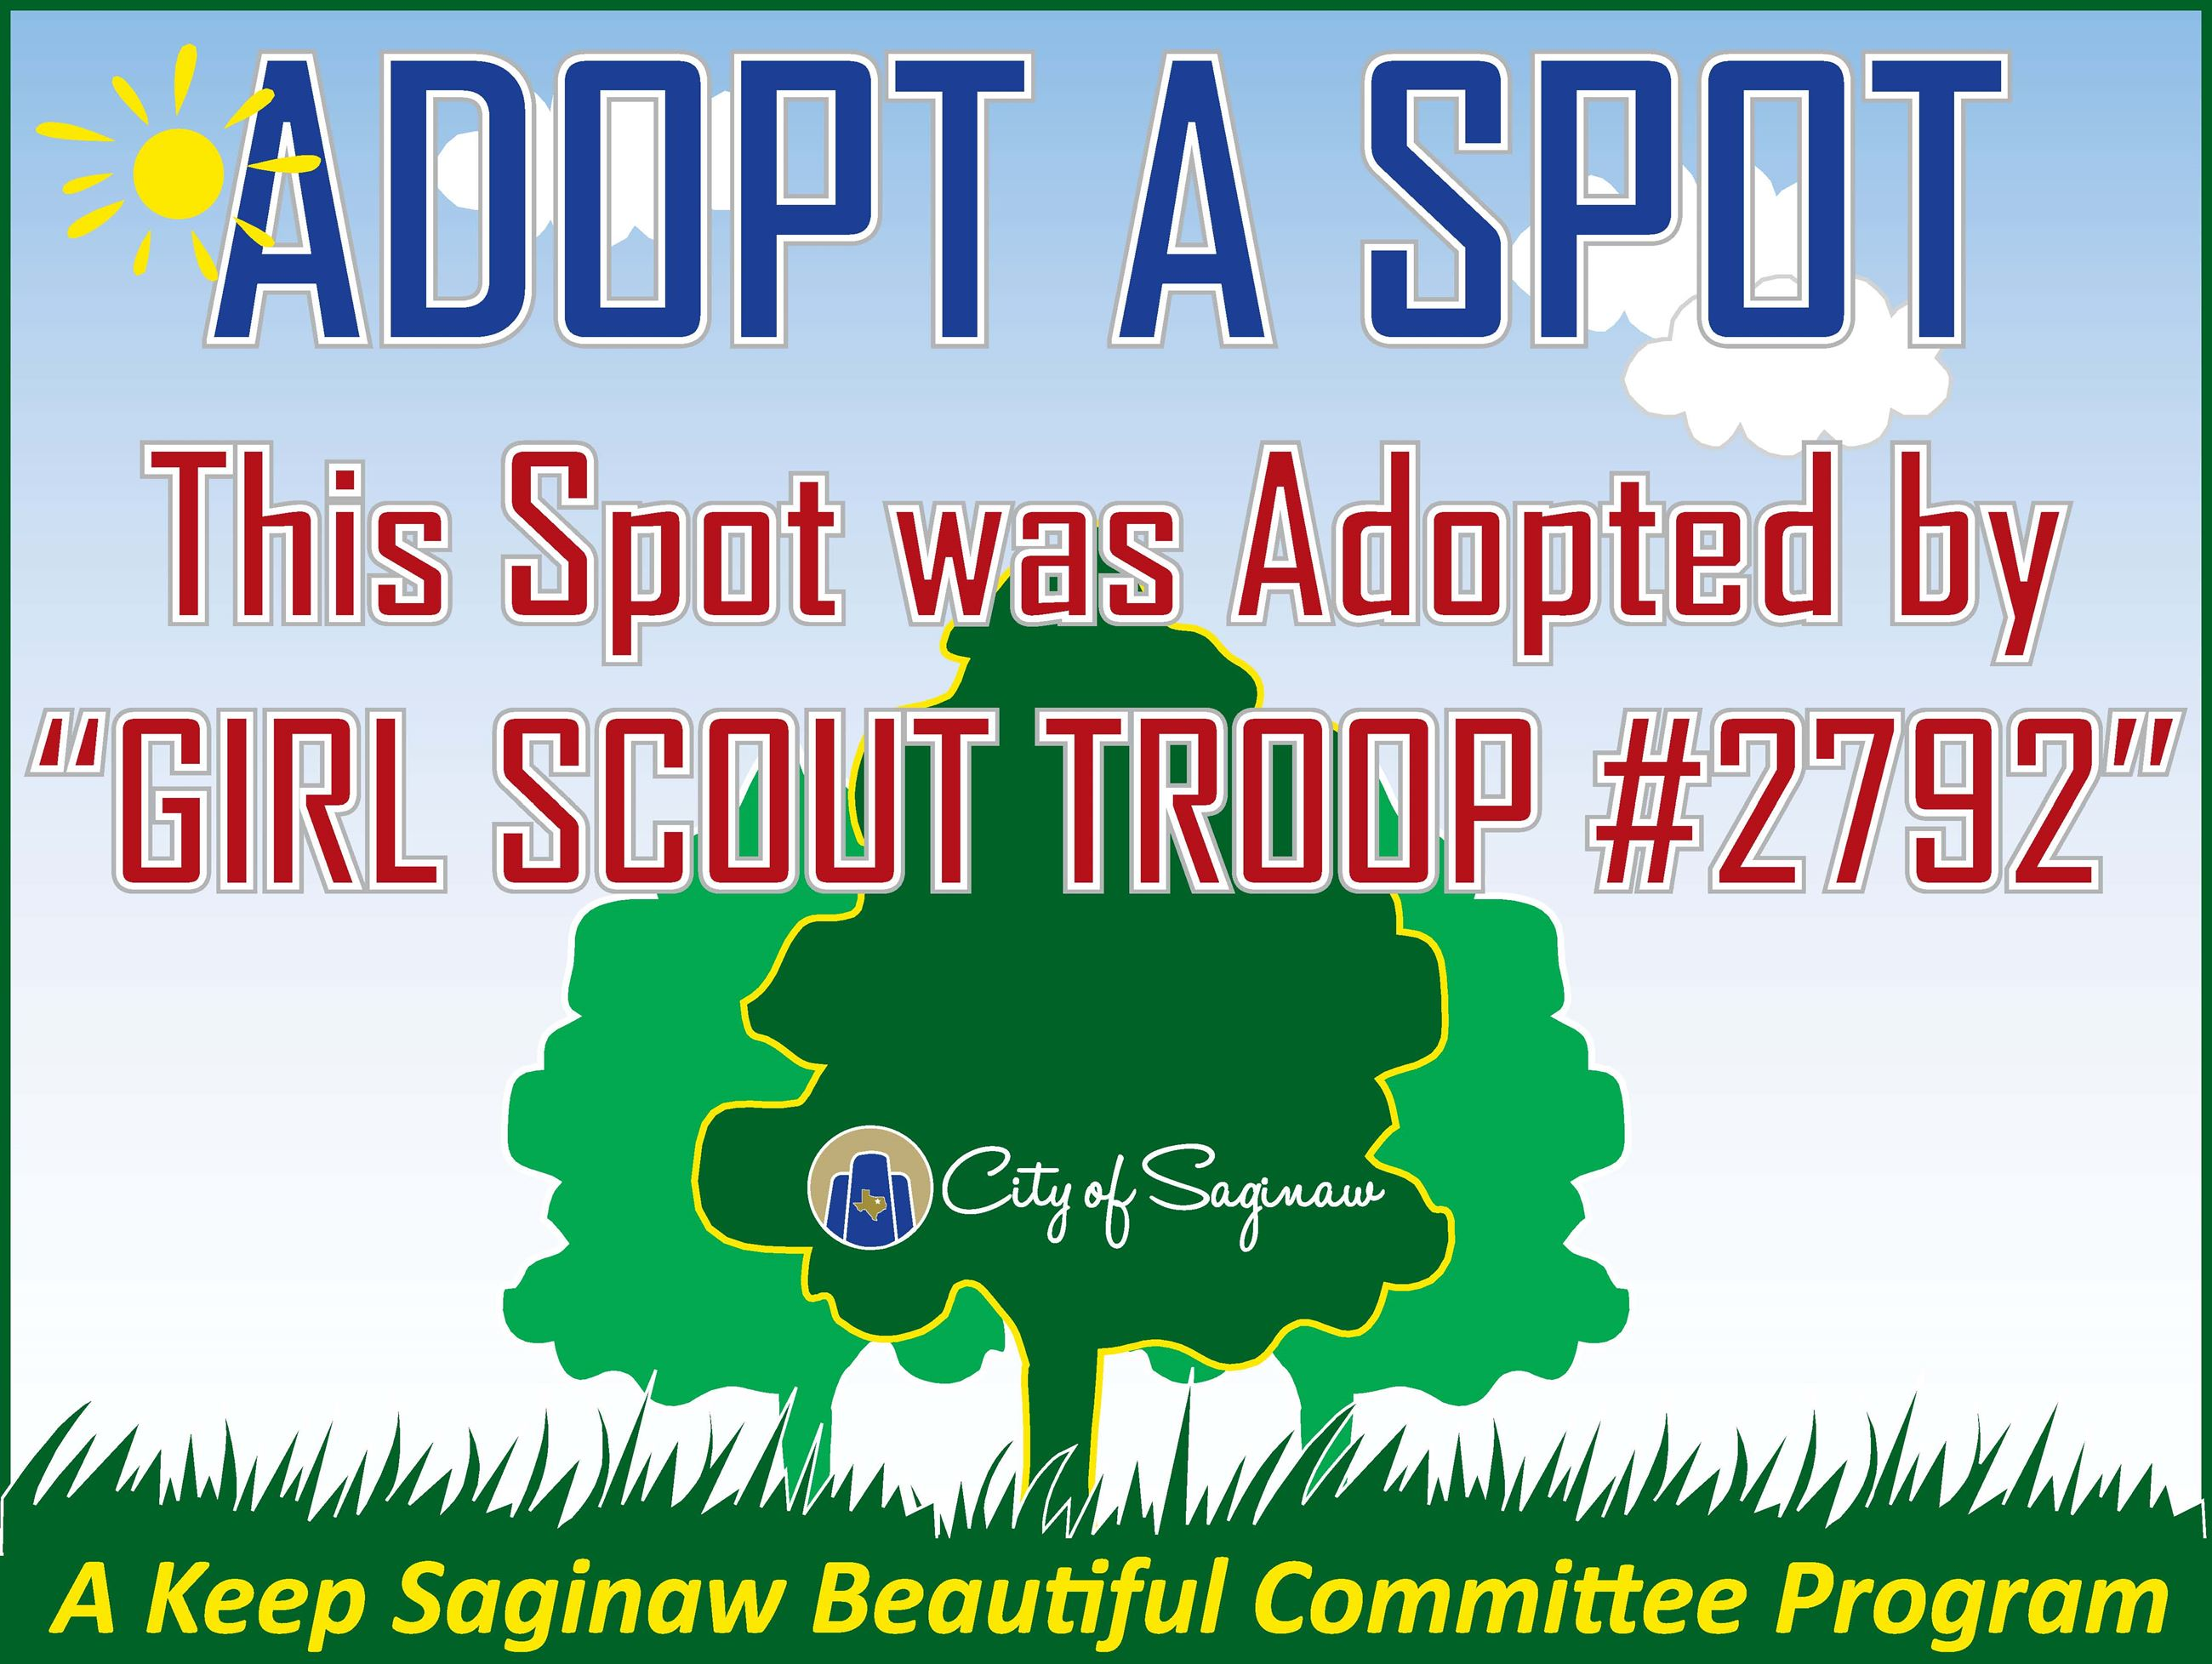 GS Troop 2792 AAS